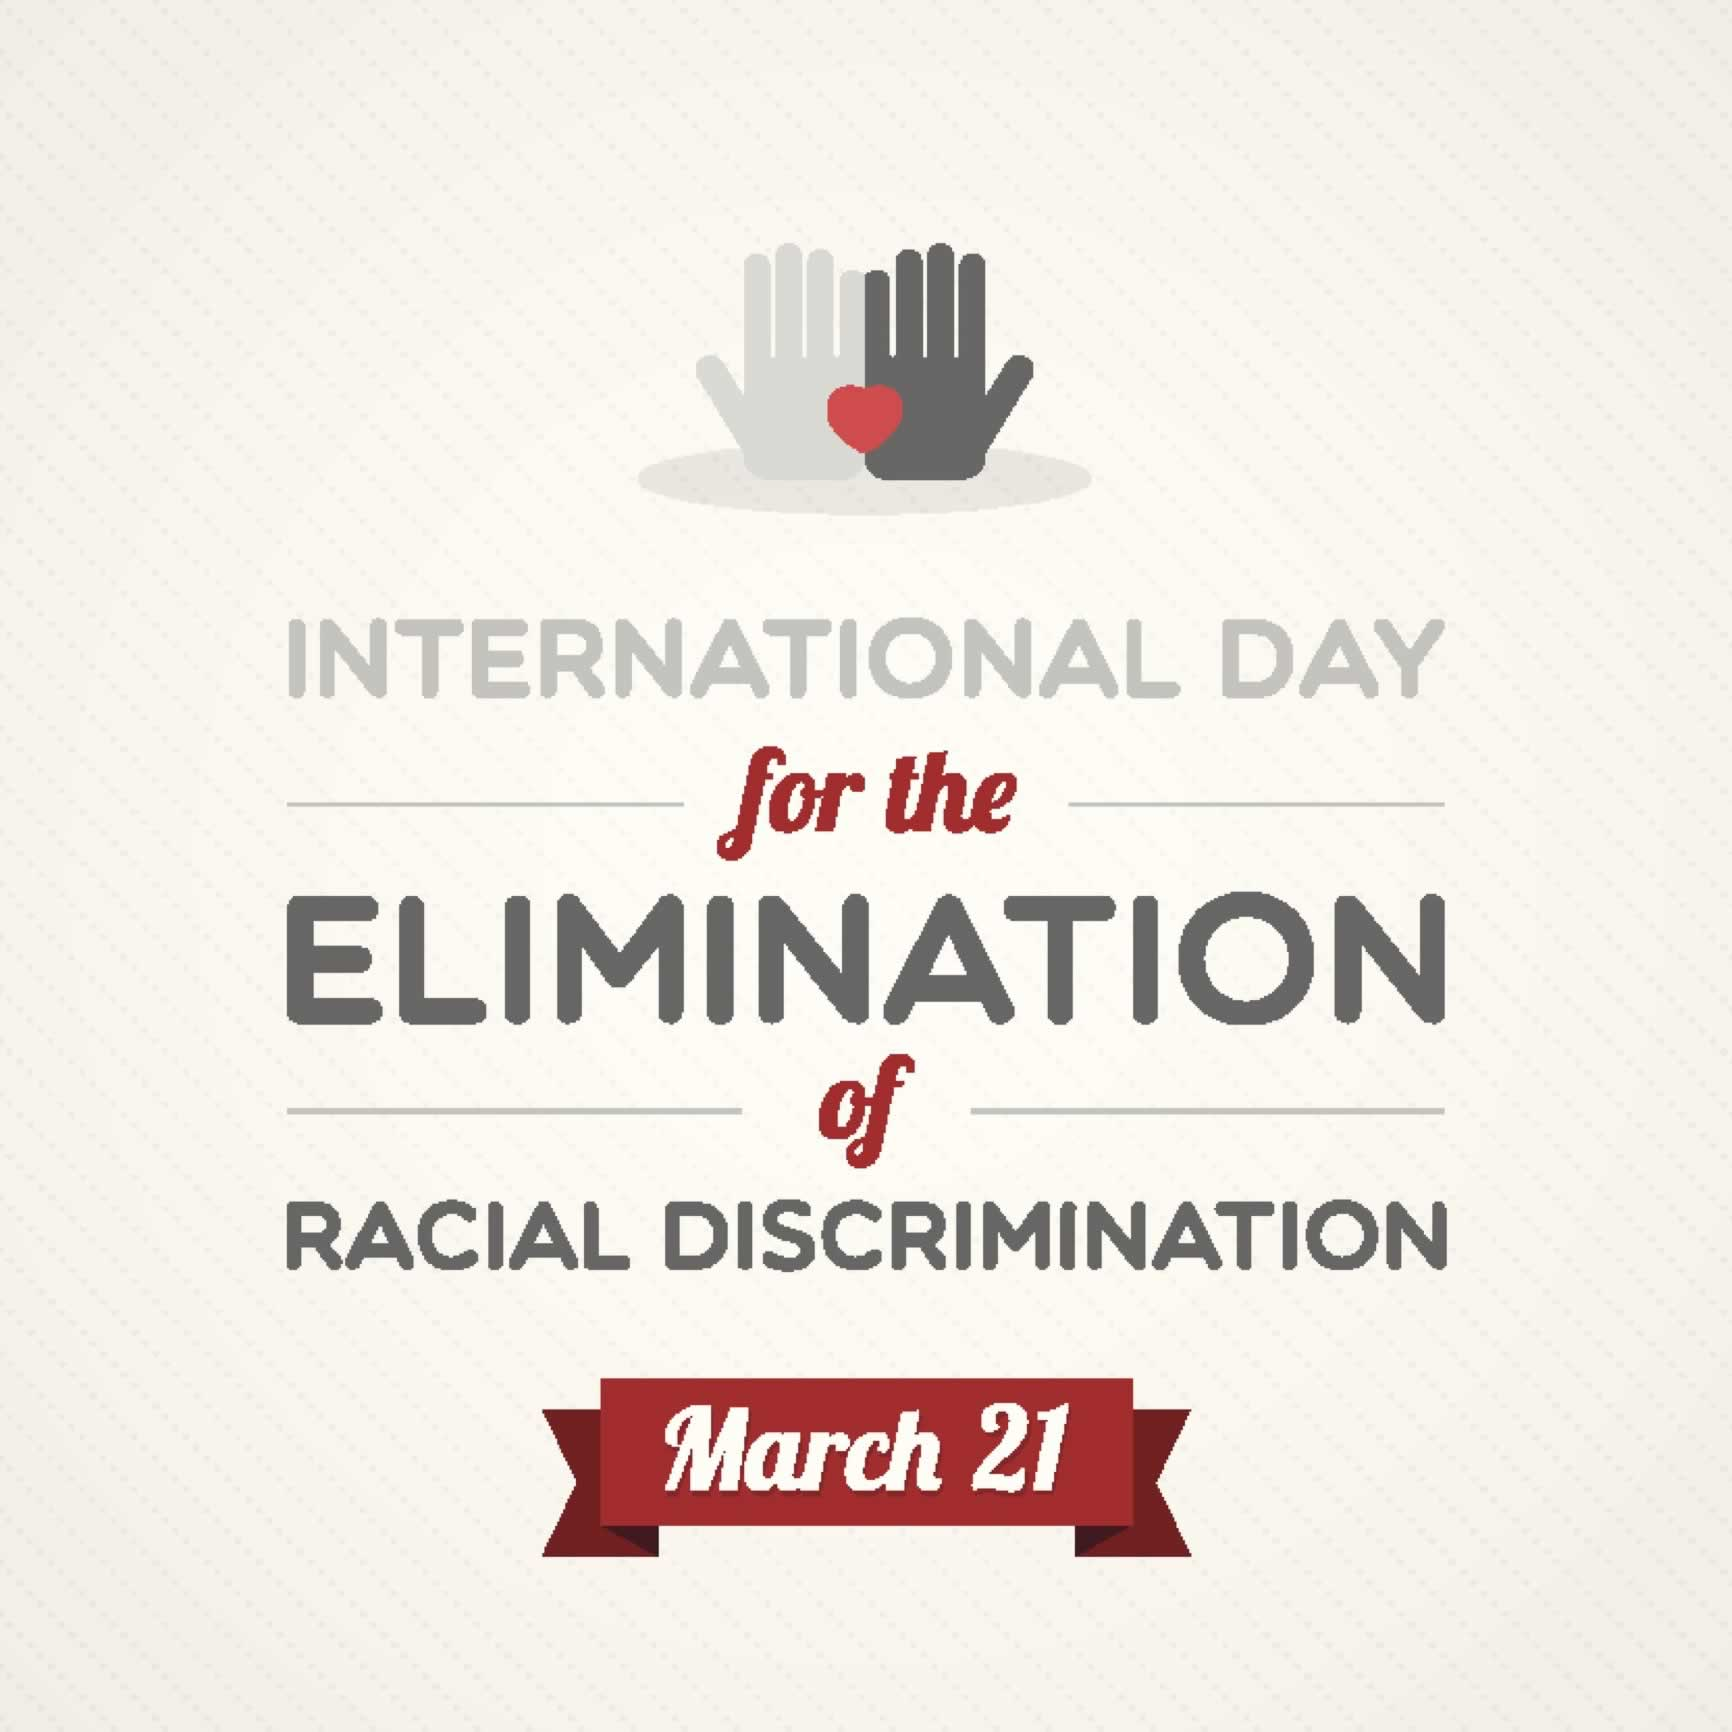 International Day for the Elimination of Racial Discrimination, March 21